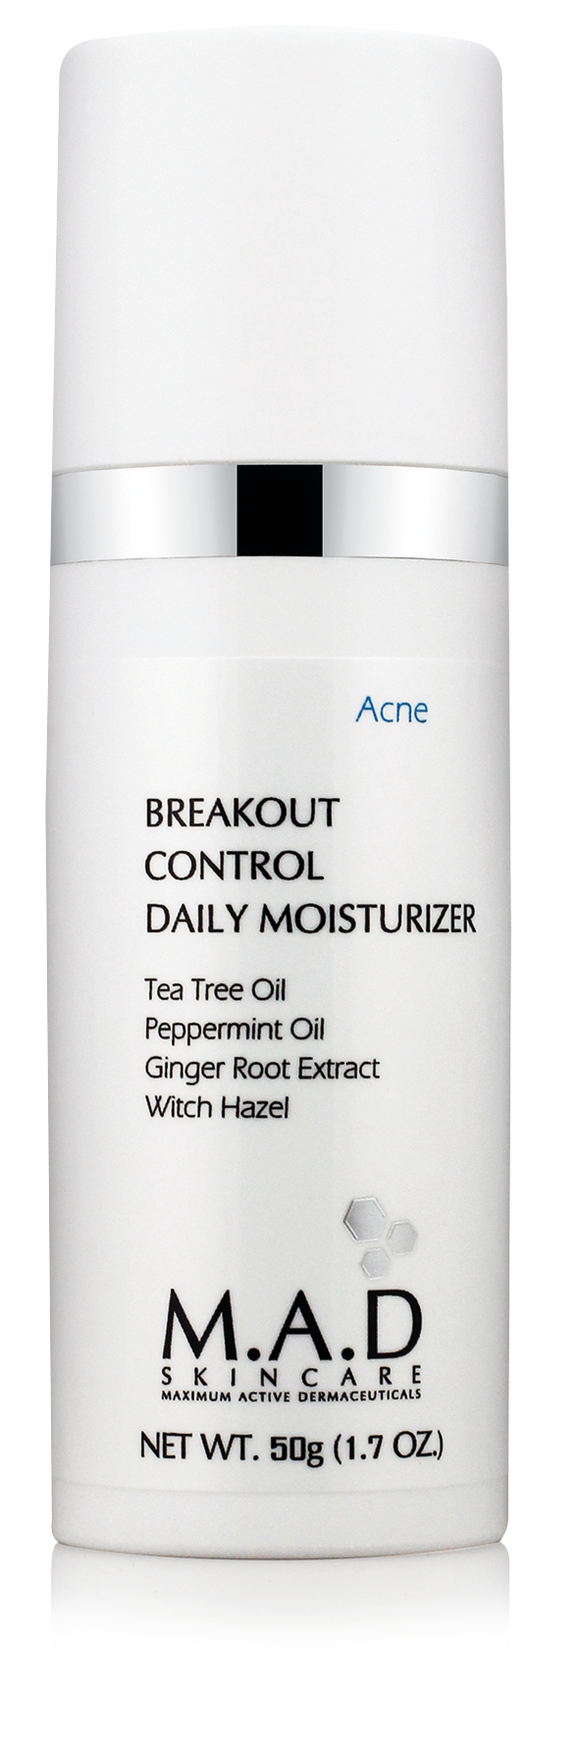 MAD BREAKOUT CONTROL DAILY MOISTURIZER